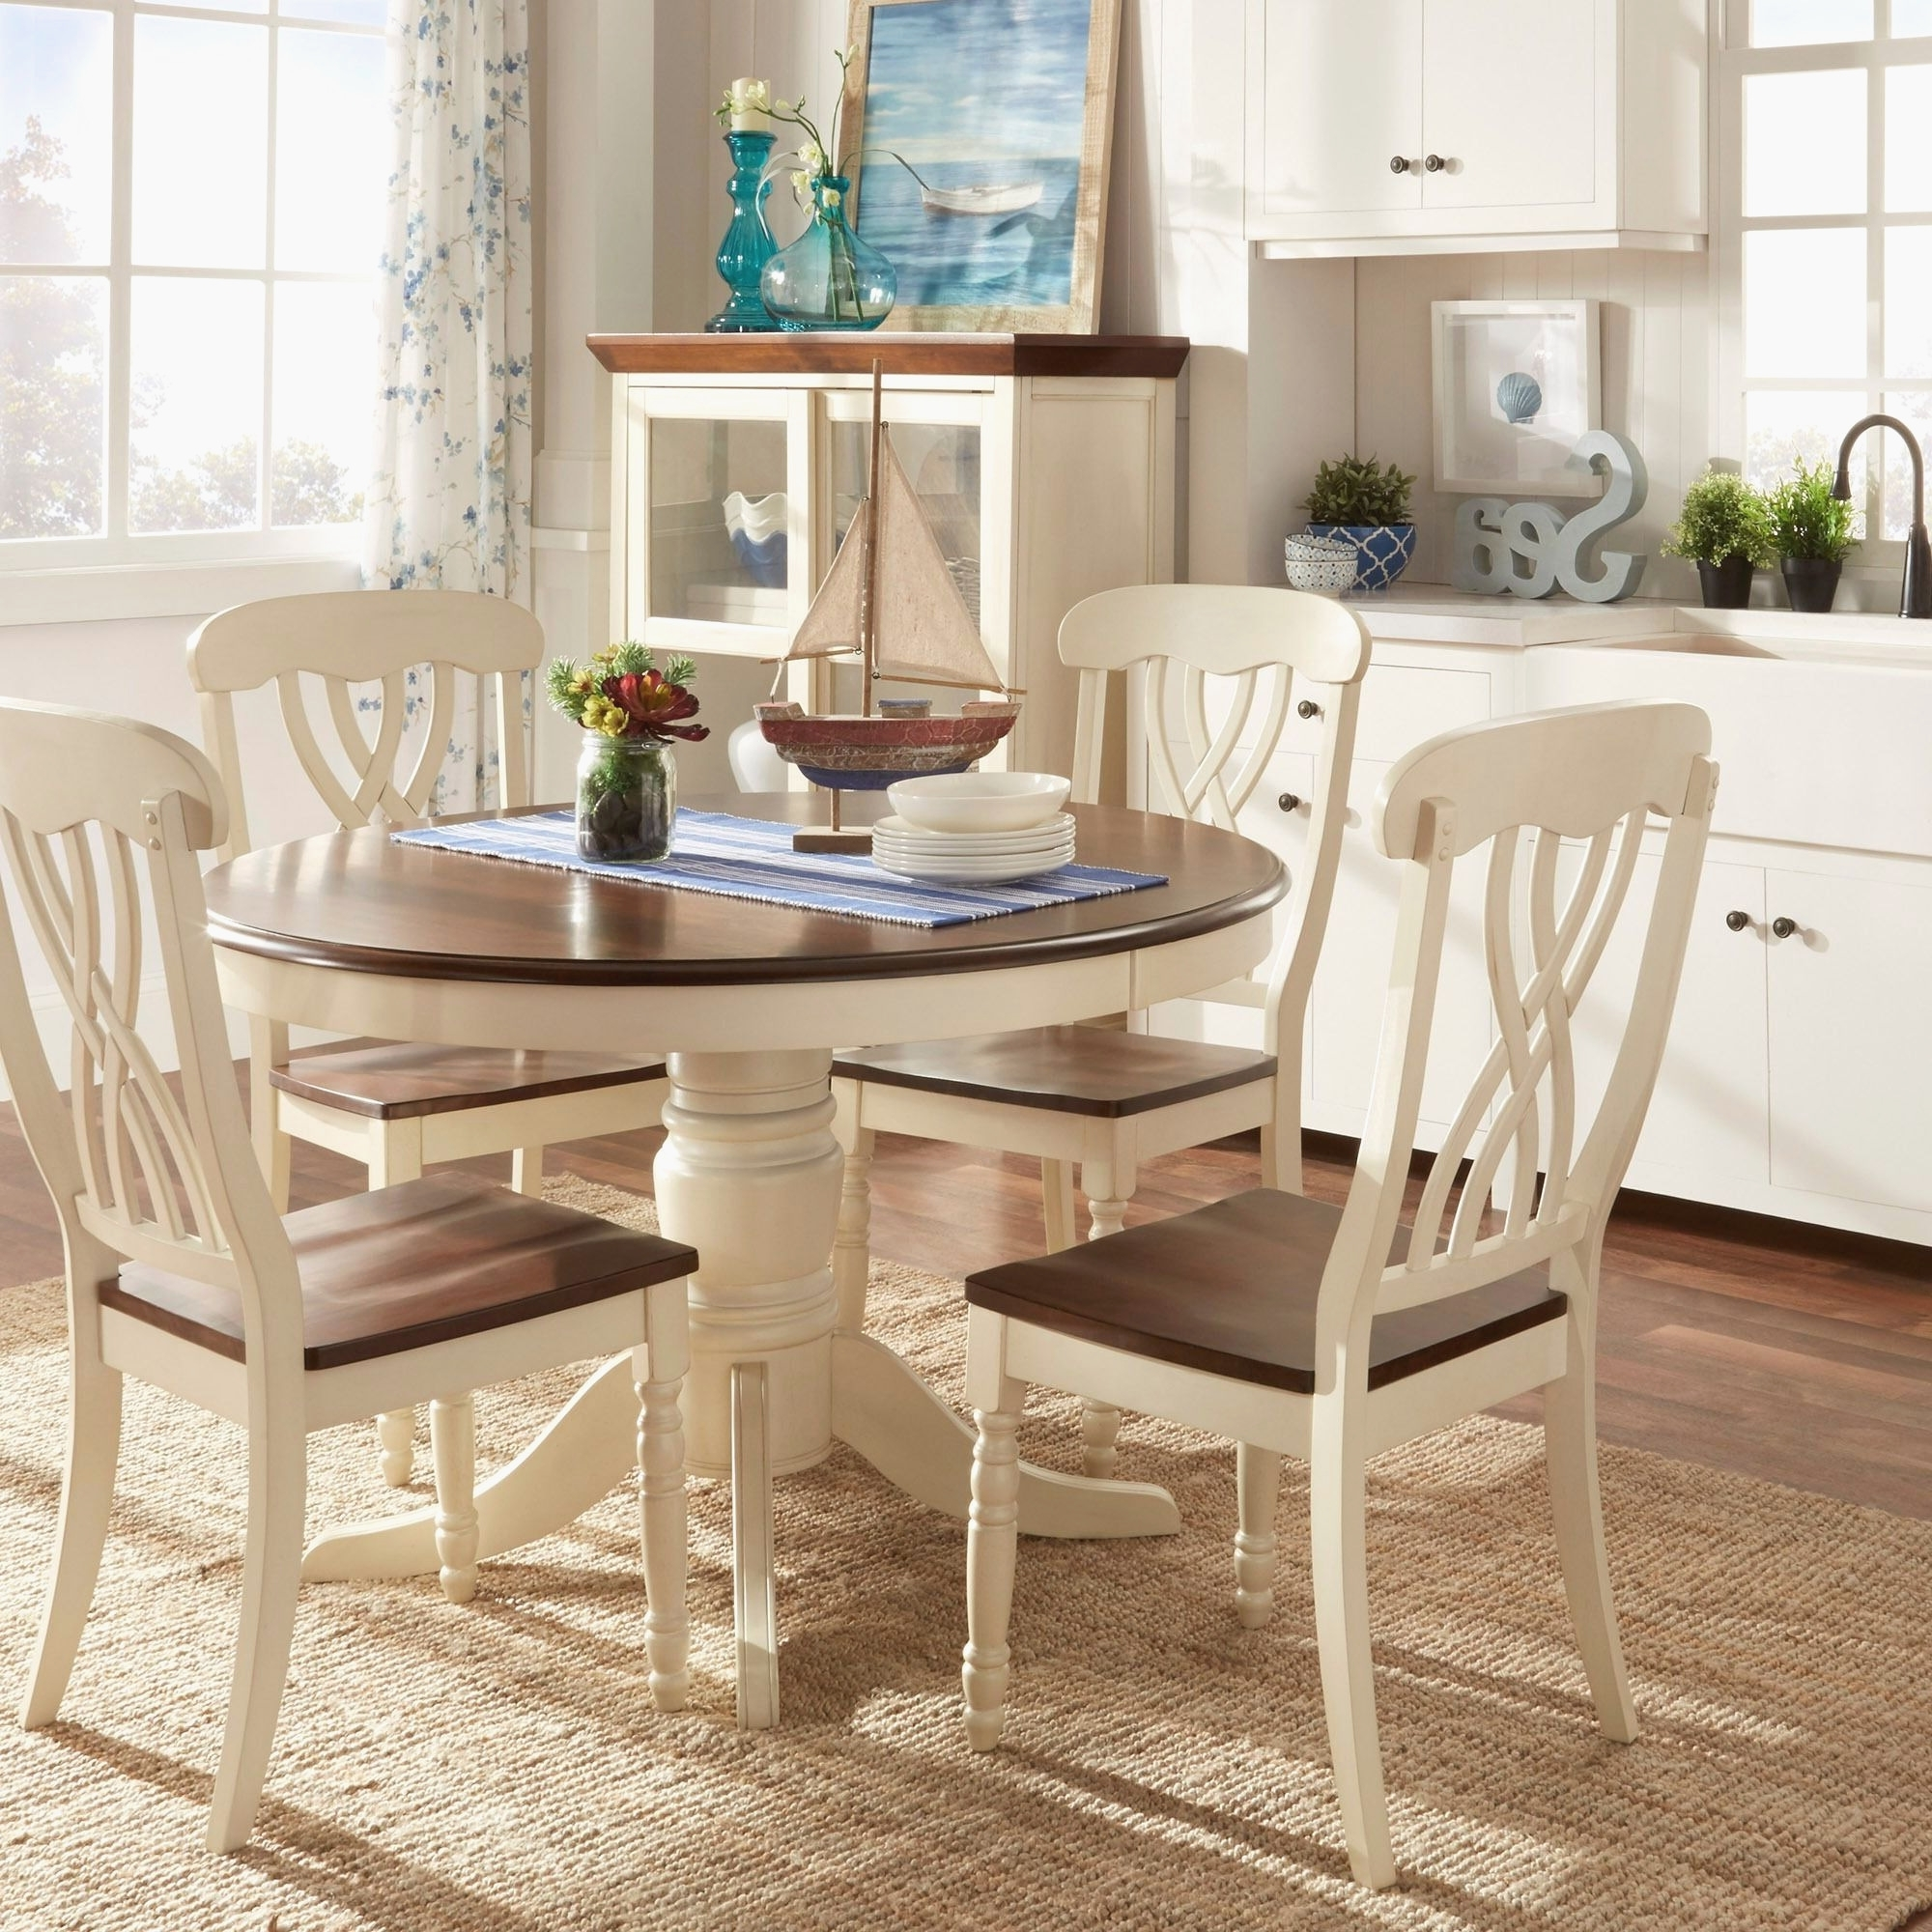 Popular 72 Inch Round Modern Dining Table Best Of Dining Room Table And Pertaining To Non Wood Dining Tables (View 10 of 25)